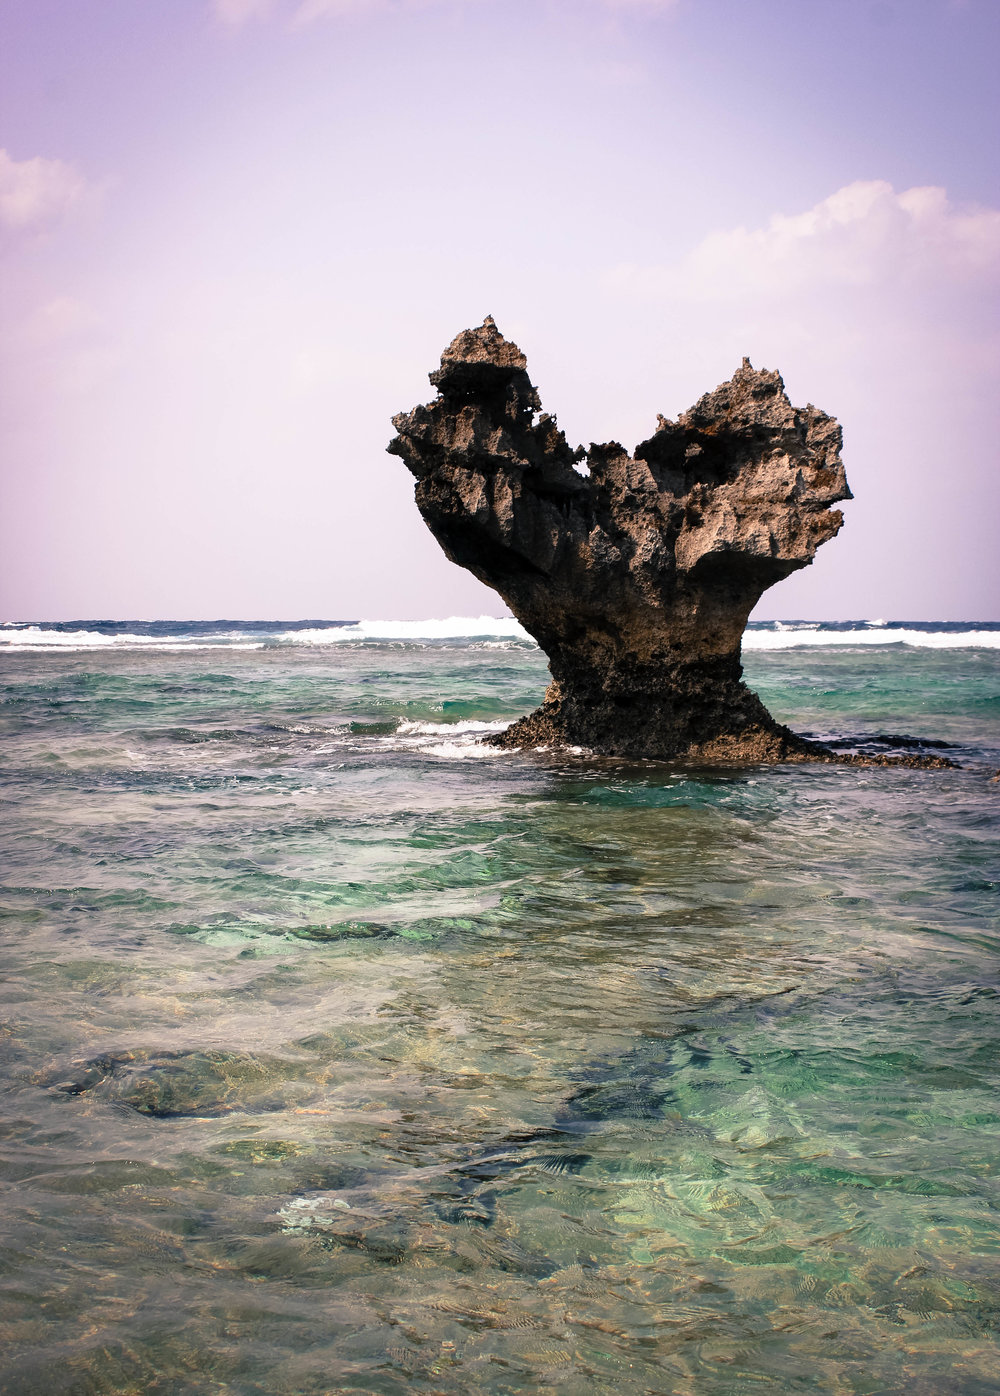 Heart Rock of Okinawa. There was no cafe nearby though. Missed opportunity for a... Heart Rock Cafe.